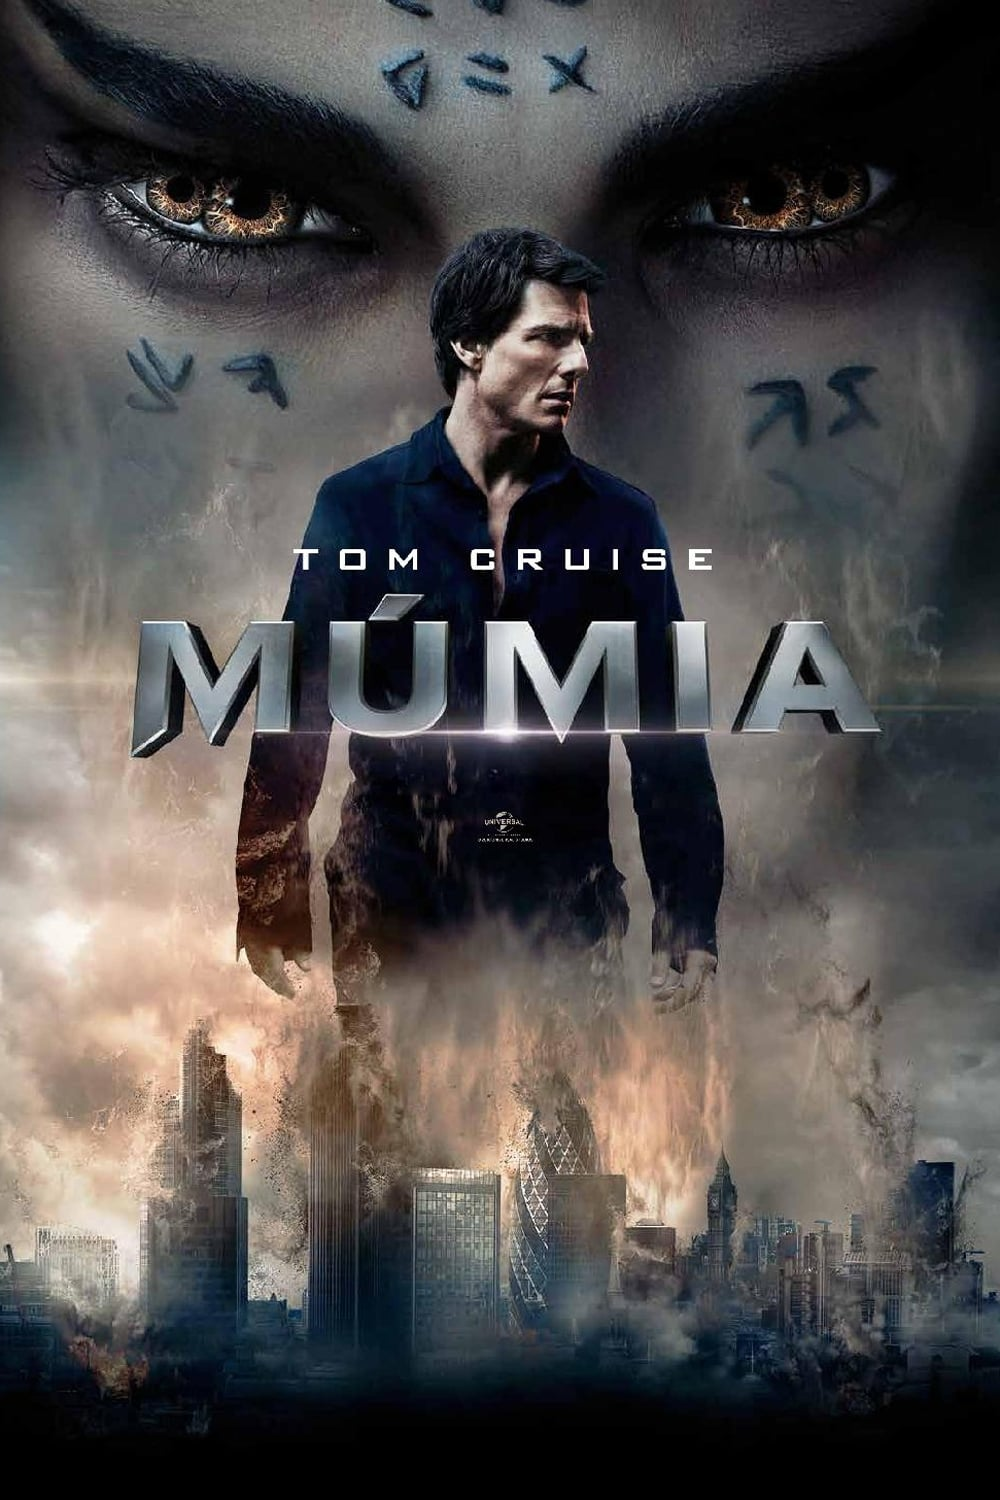 The Mummy 2017 Posters The Movie Database Tmdb